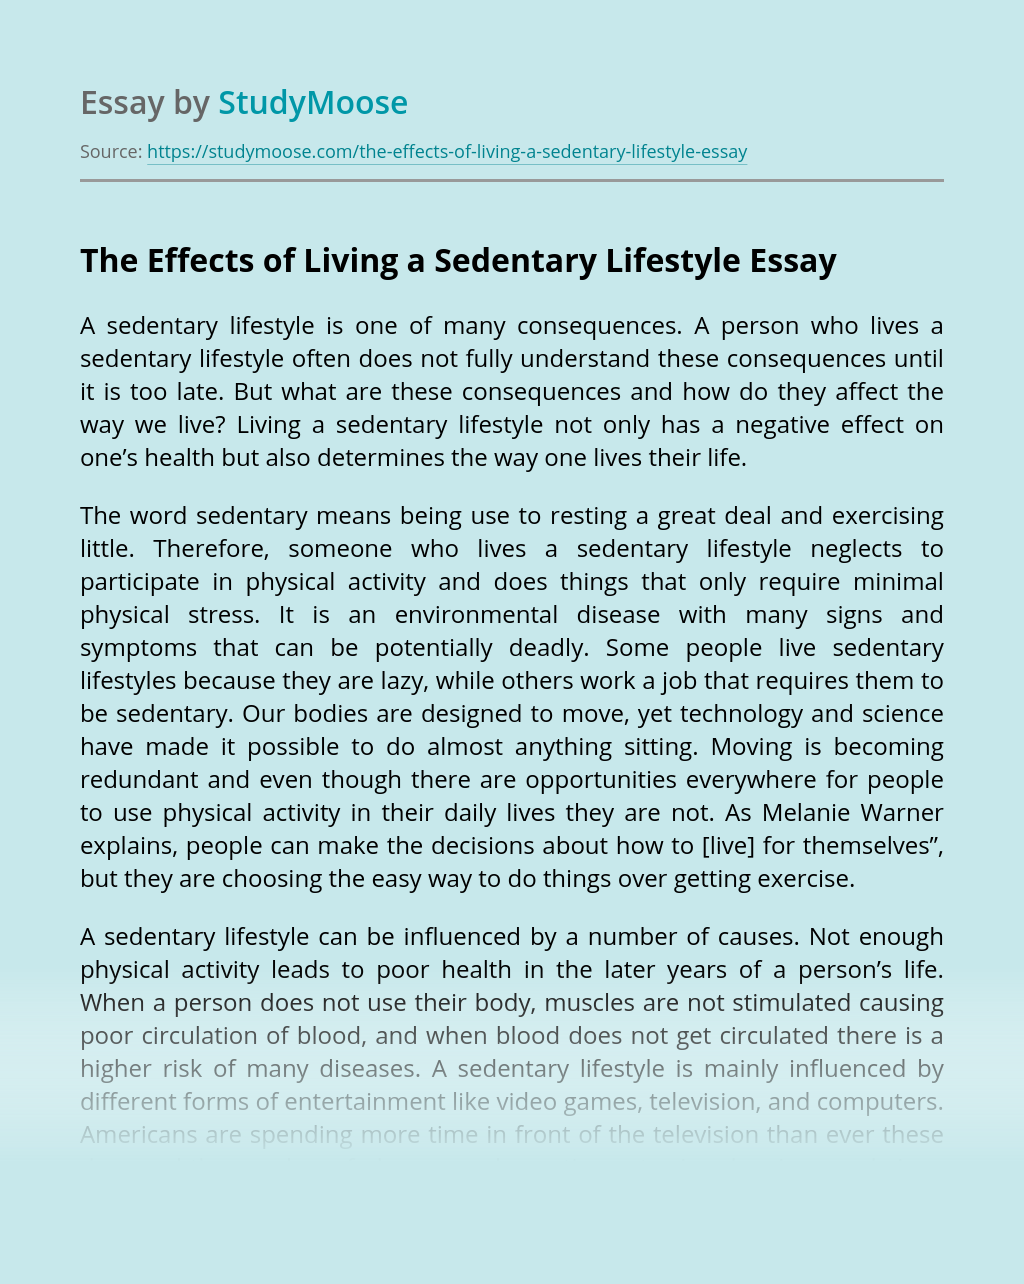 The Effects of Living a Sedentary Lifestyle